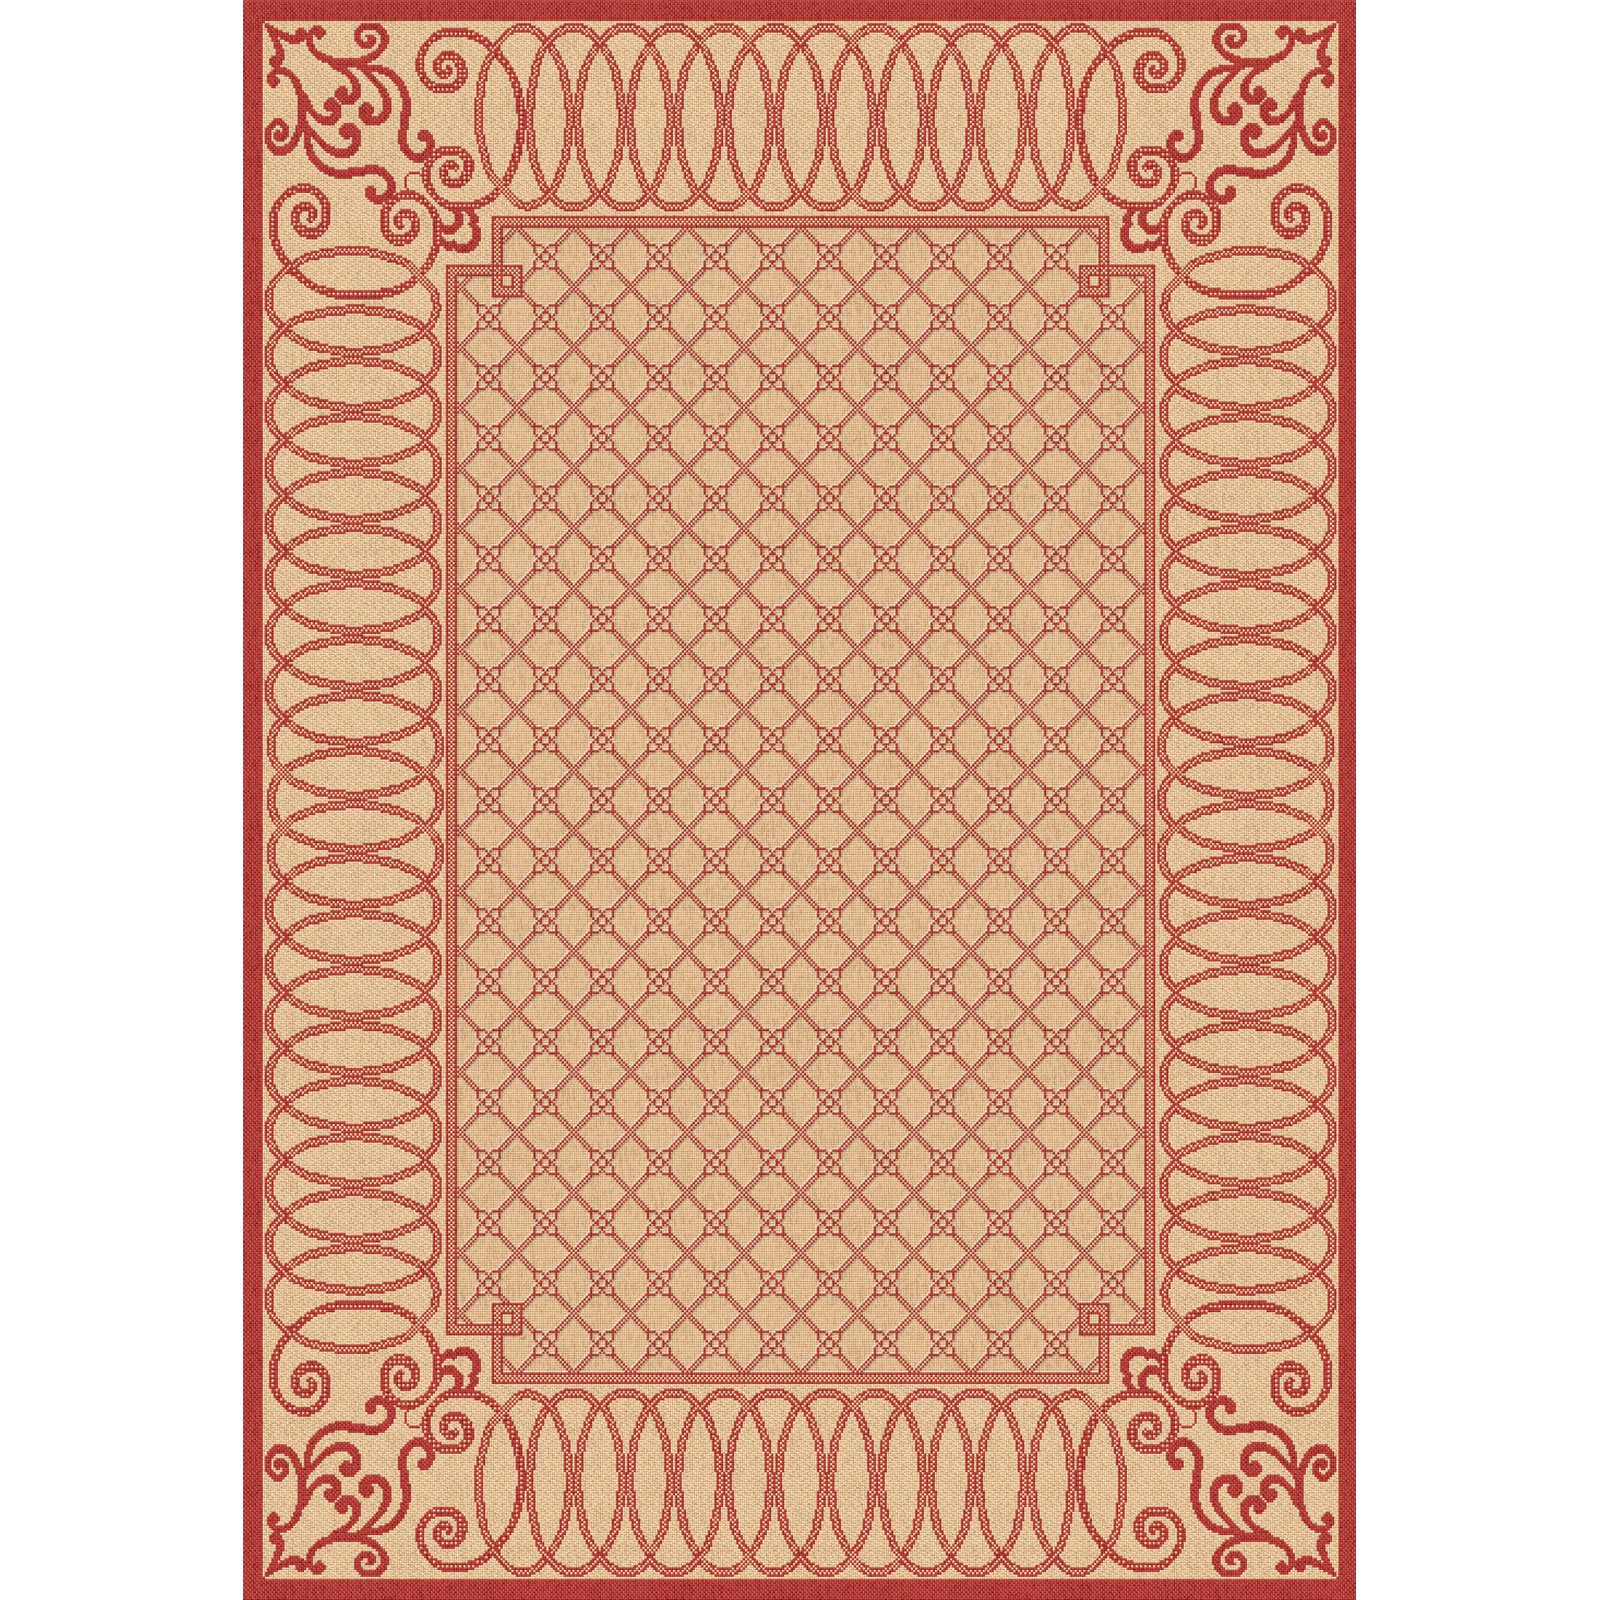 Dynamic Rugs Piazza Infinity Indoor/Outdoor Area Rug - Beige/Red